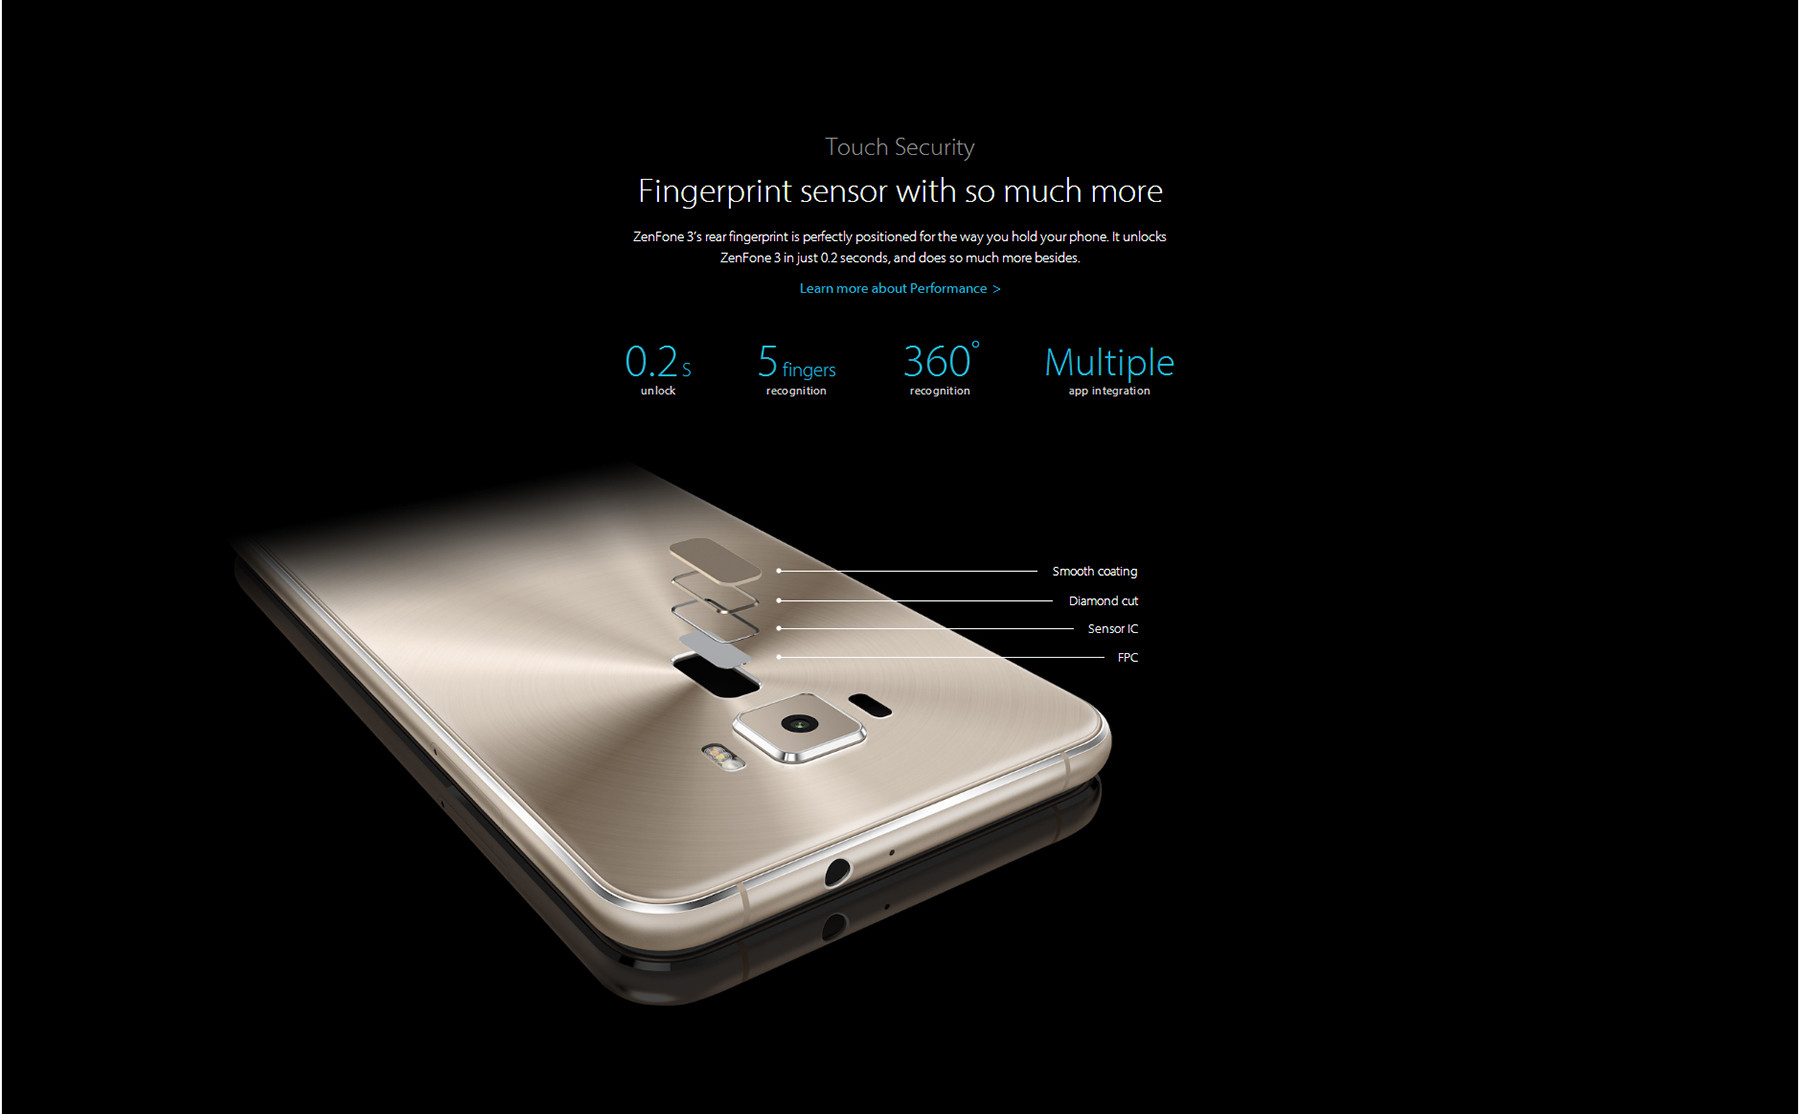 Asus ZenFone 3 (ZE552KL) Android 6.0 5.5 inch Corning Gorilla Glass 3 Screen 4G Phablet Qualcomm Snapdragon 625 Octa Core 2.0GHz 4GB RAM 64GB Fingerprint Scanner GPS